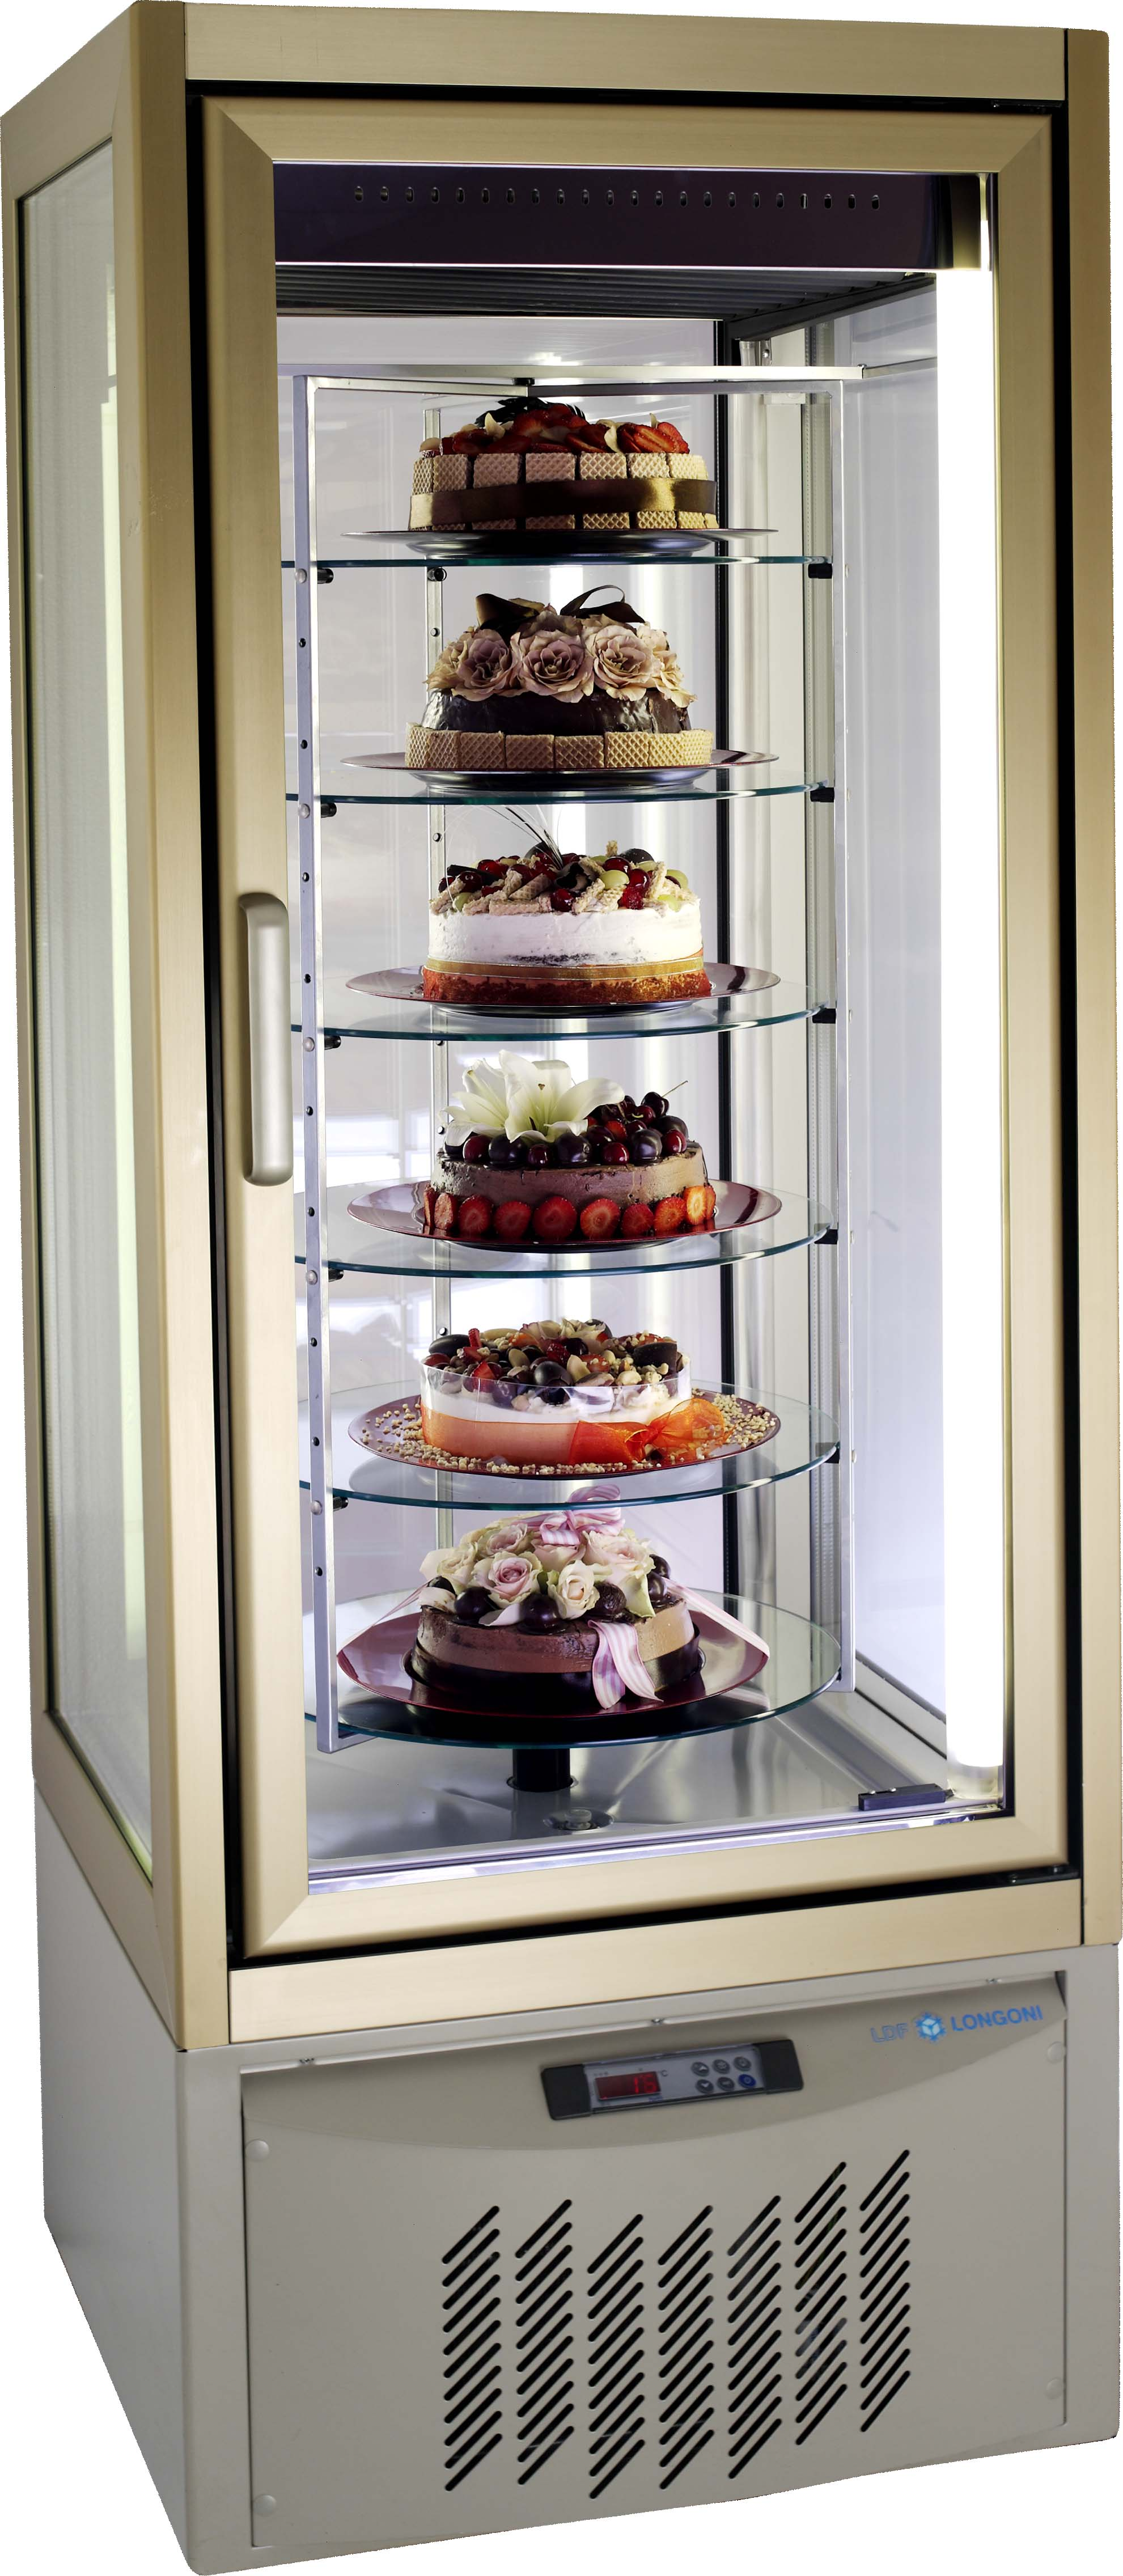 CAKE DISPLAY FRIDGE LONGONI - 420Lt (BRONZE)  (DELIVERY IN GAUTENG & WESTERN CAPE ONLY)